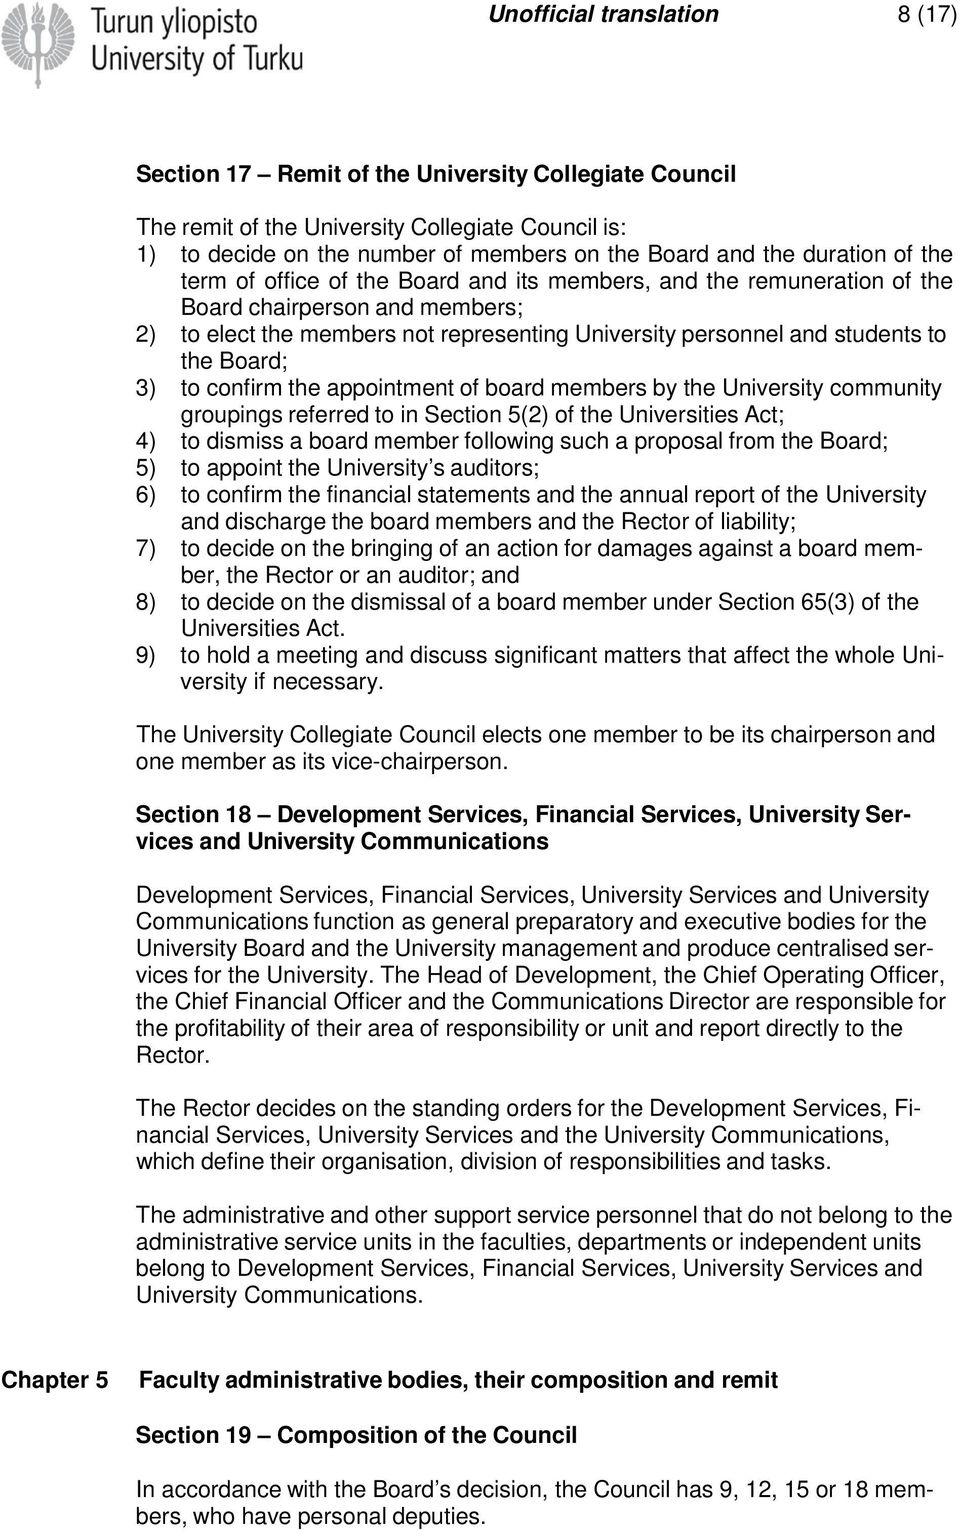 the Board; 3) to confirm the appointment of board members by the University community groupings referred to in Section 5(2) of the Universities Act; 4) to dismiss a board member following such a